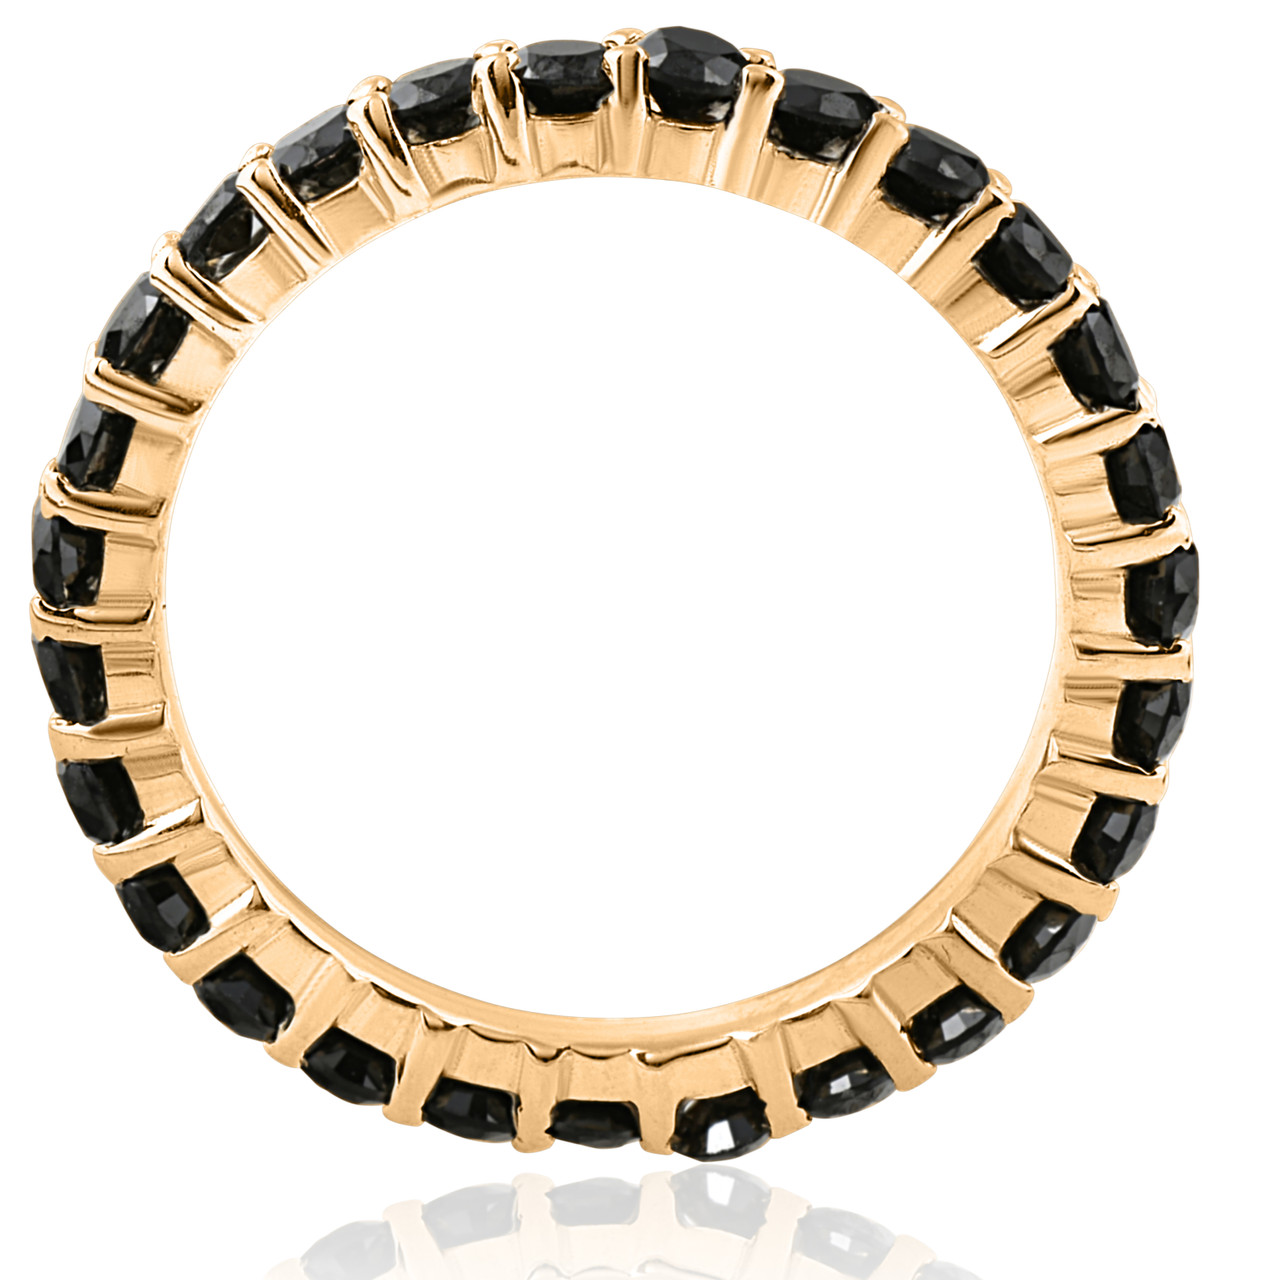 oxidized black p betteridge ivanka eternity band ring tw trump diamond ct thin bands